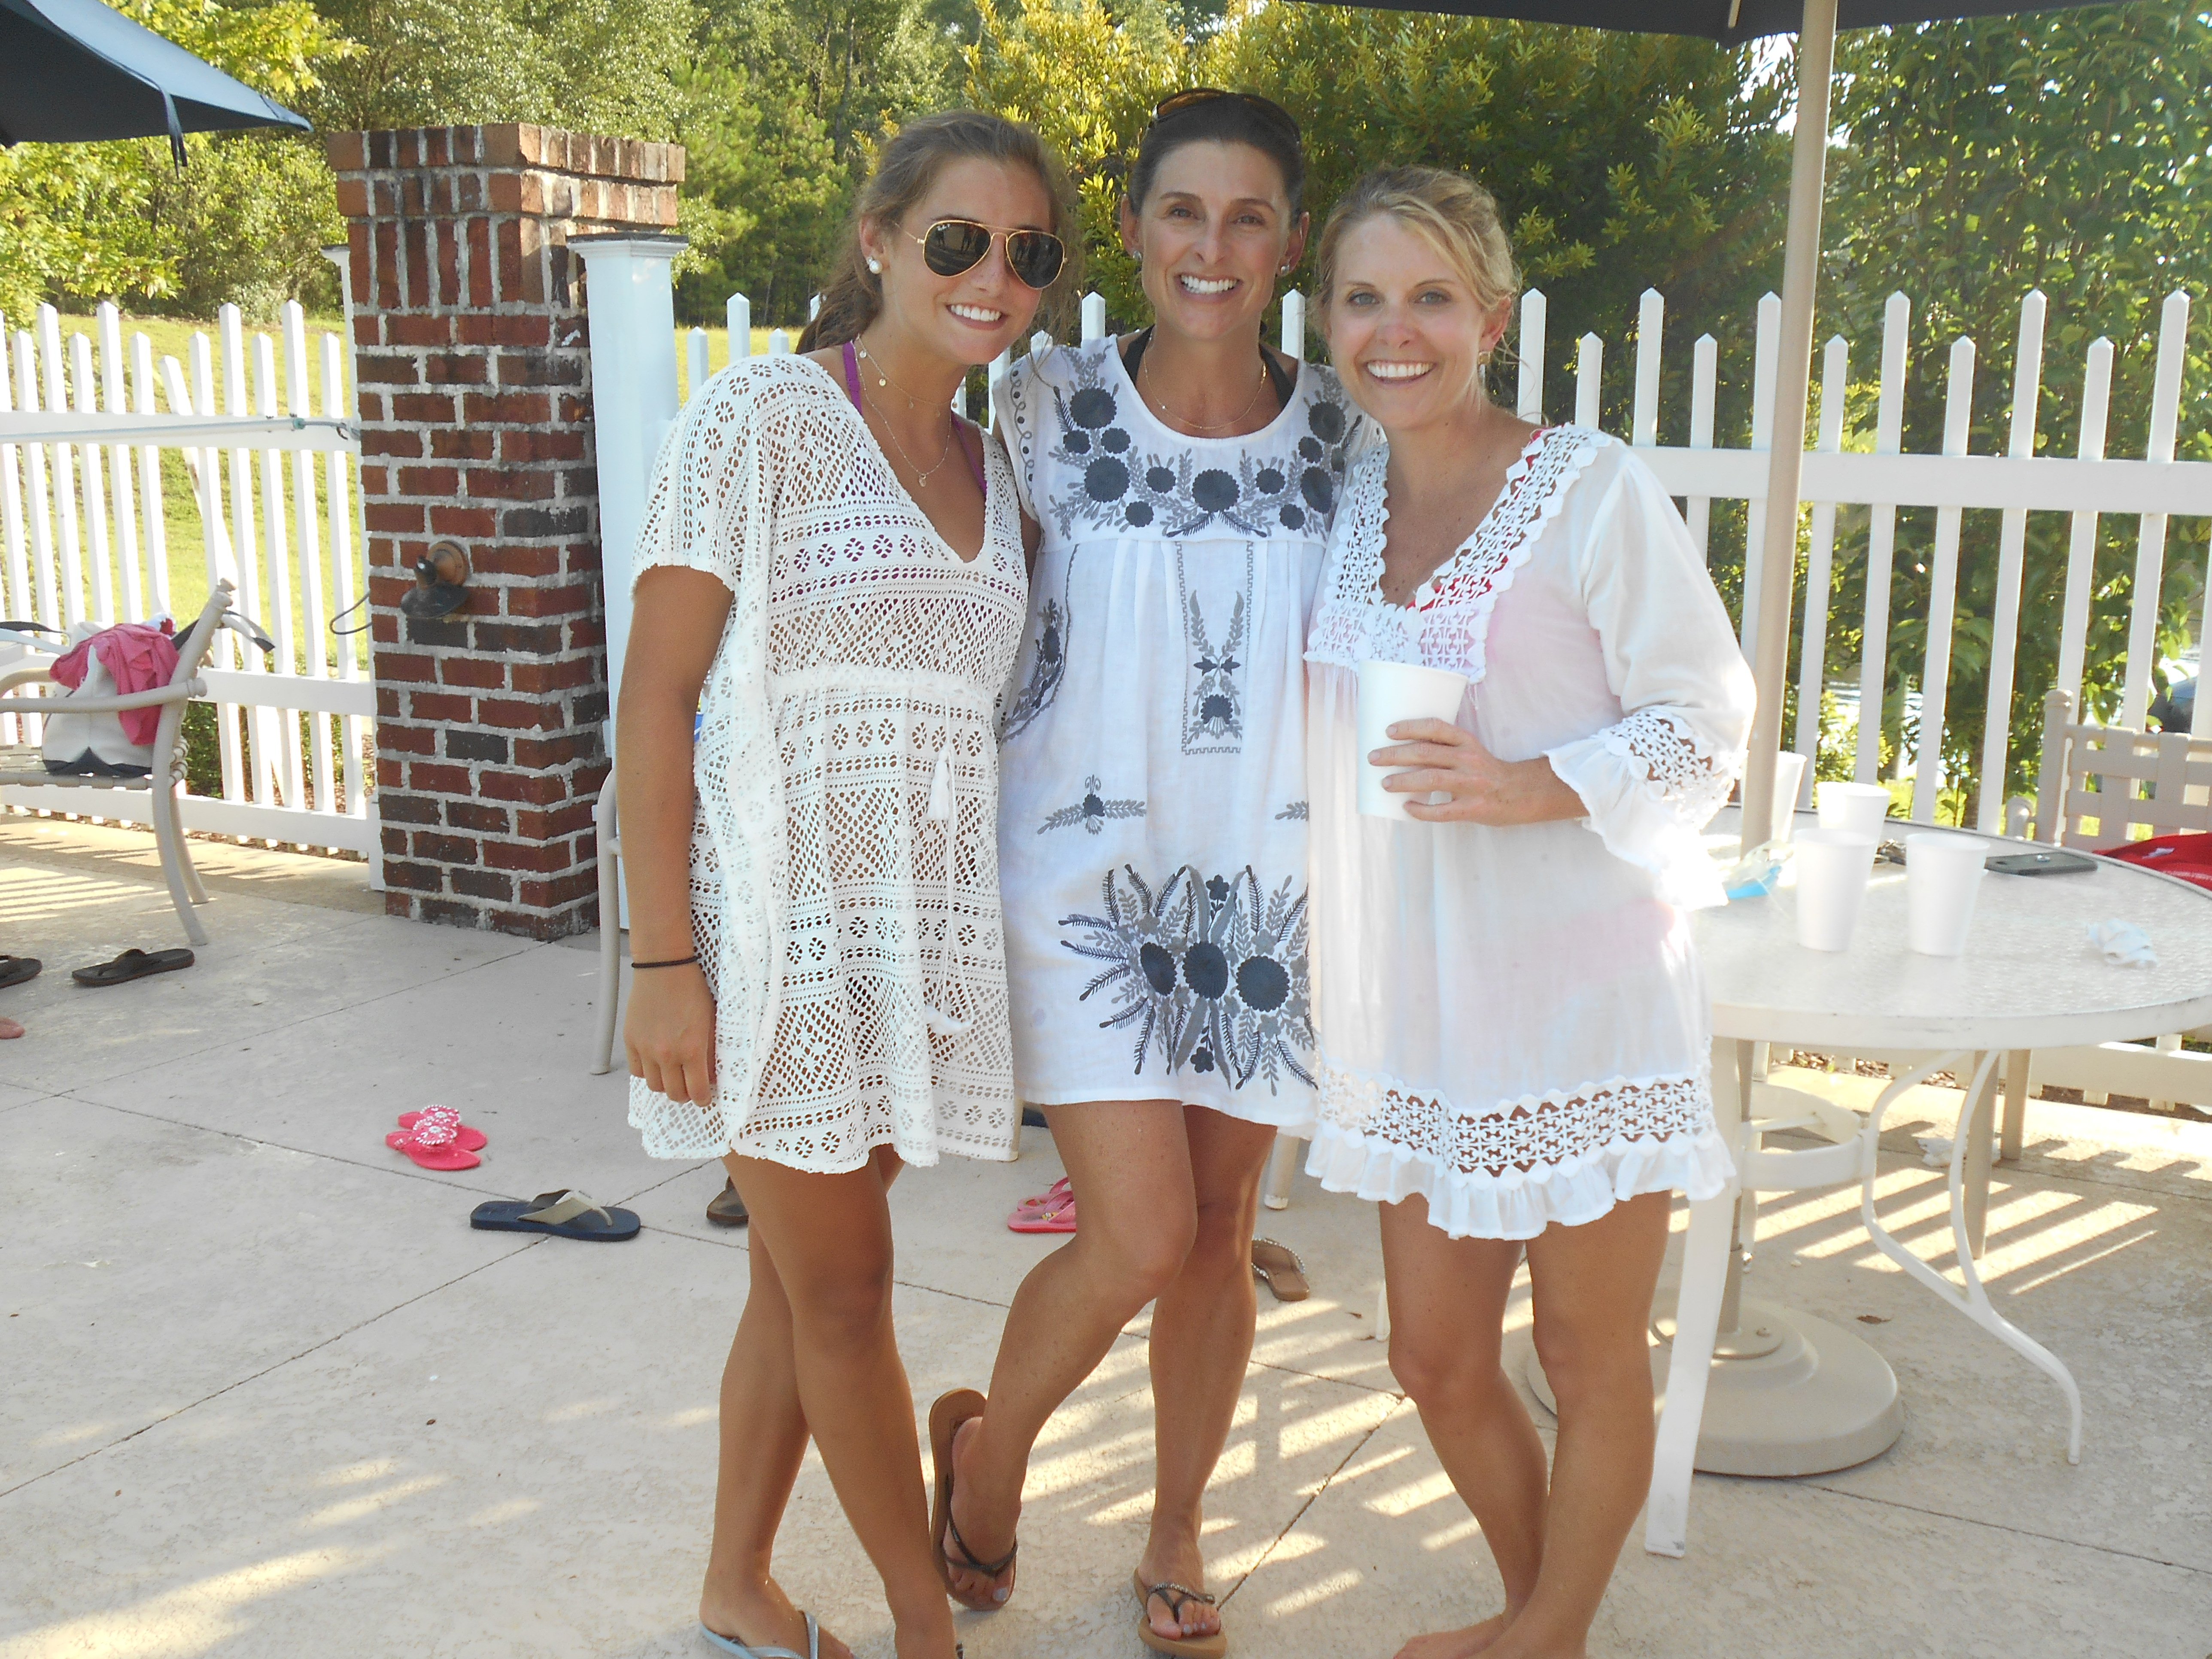 Members pose by the pool at Reserve Harbor Yacht Club